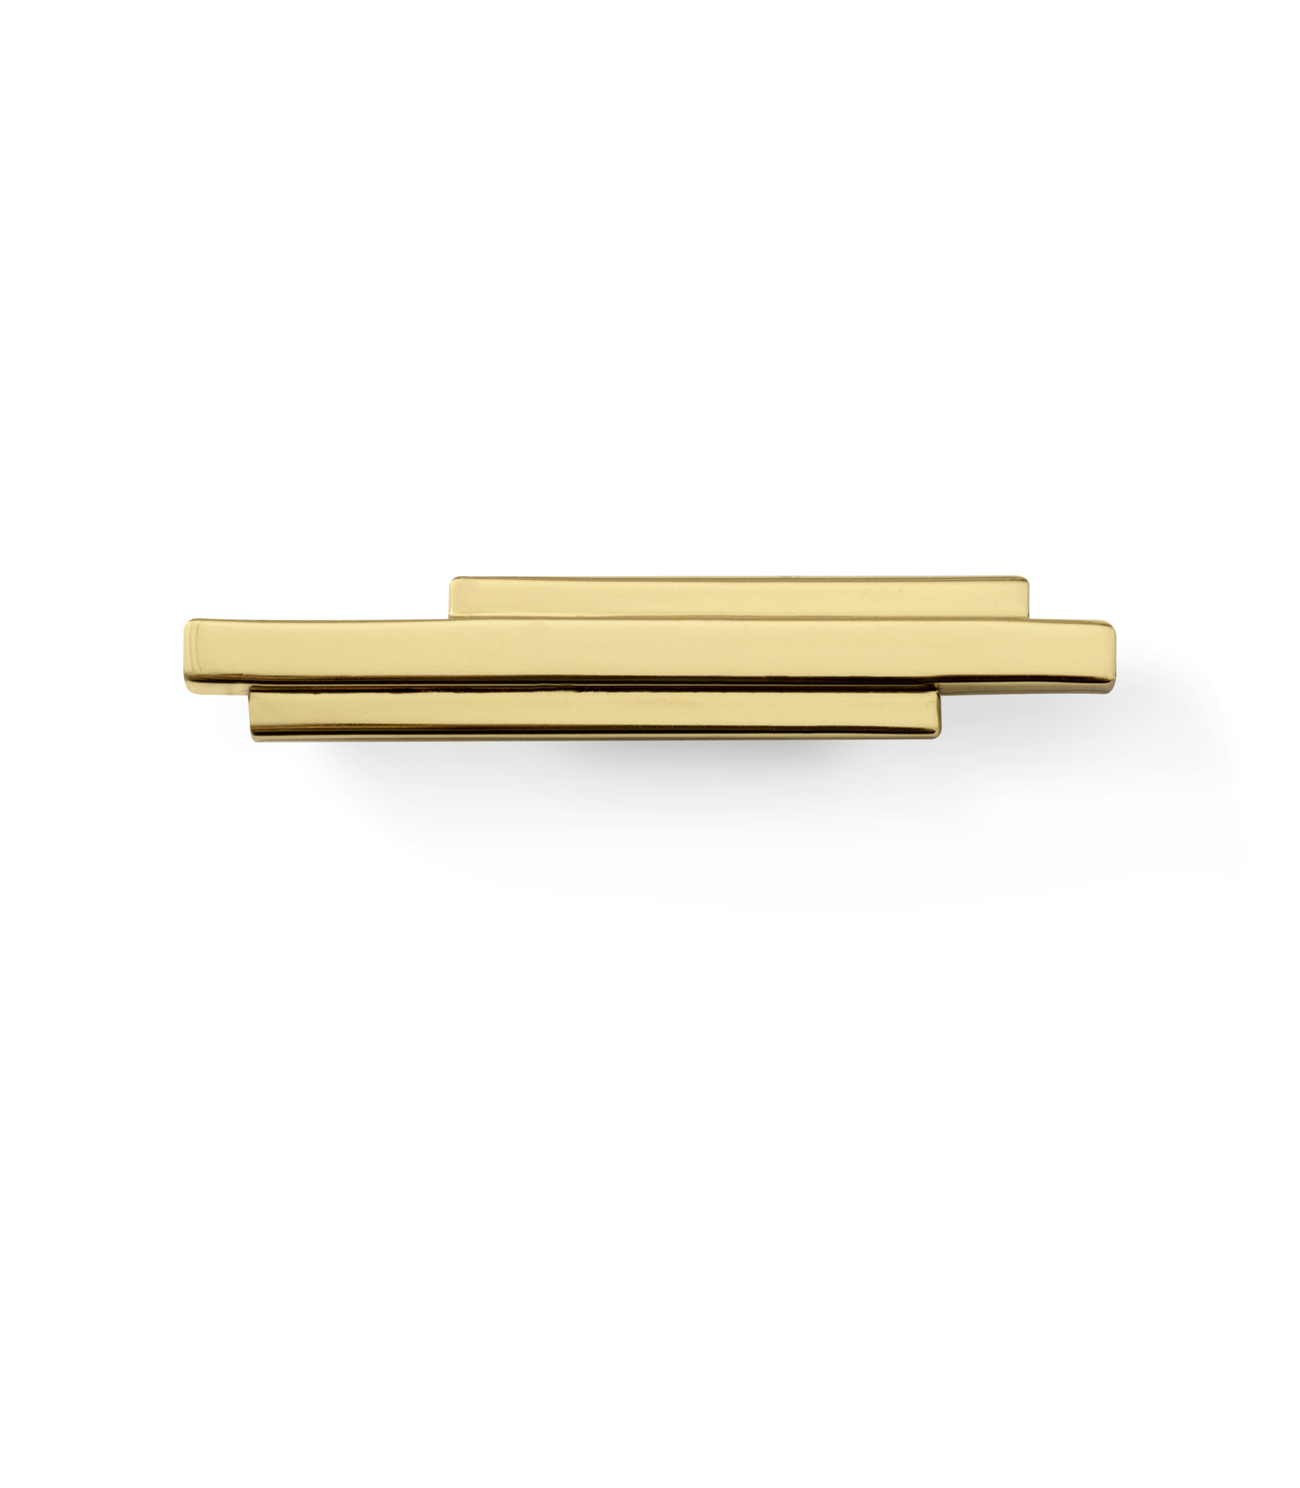 Be Suprised By Some Amazing & Minimalist Decorative Hardware Products decorative hardwar Be Suprised By Some Amazing & Minimalist Decorative Hardware Products skyline drawer